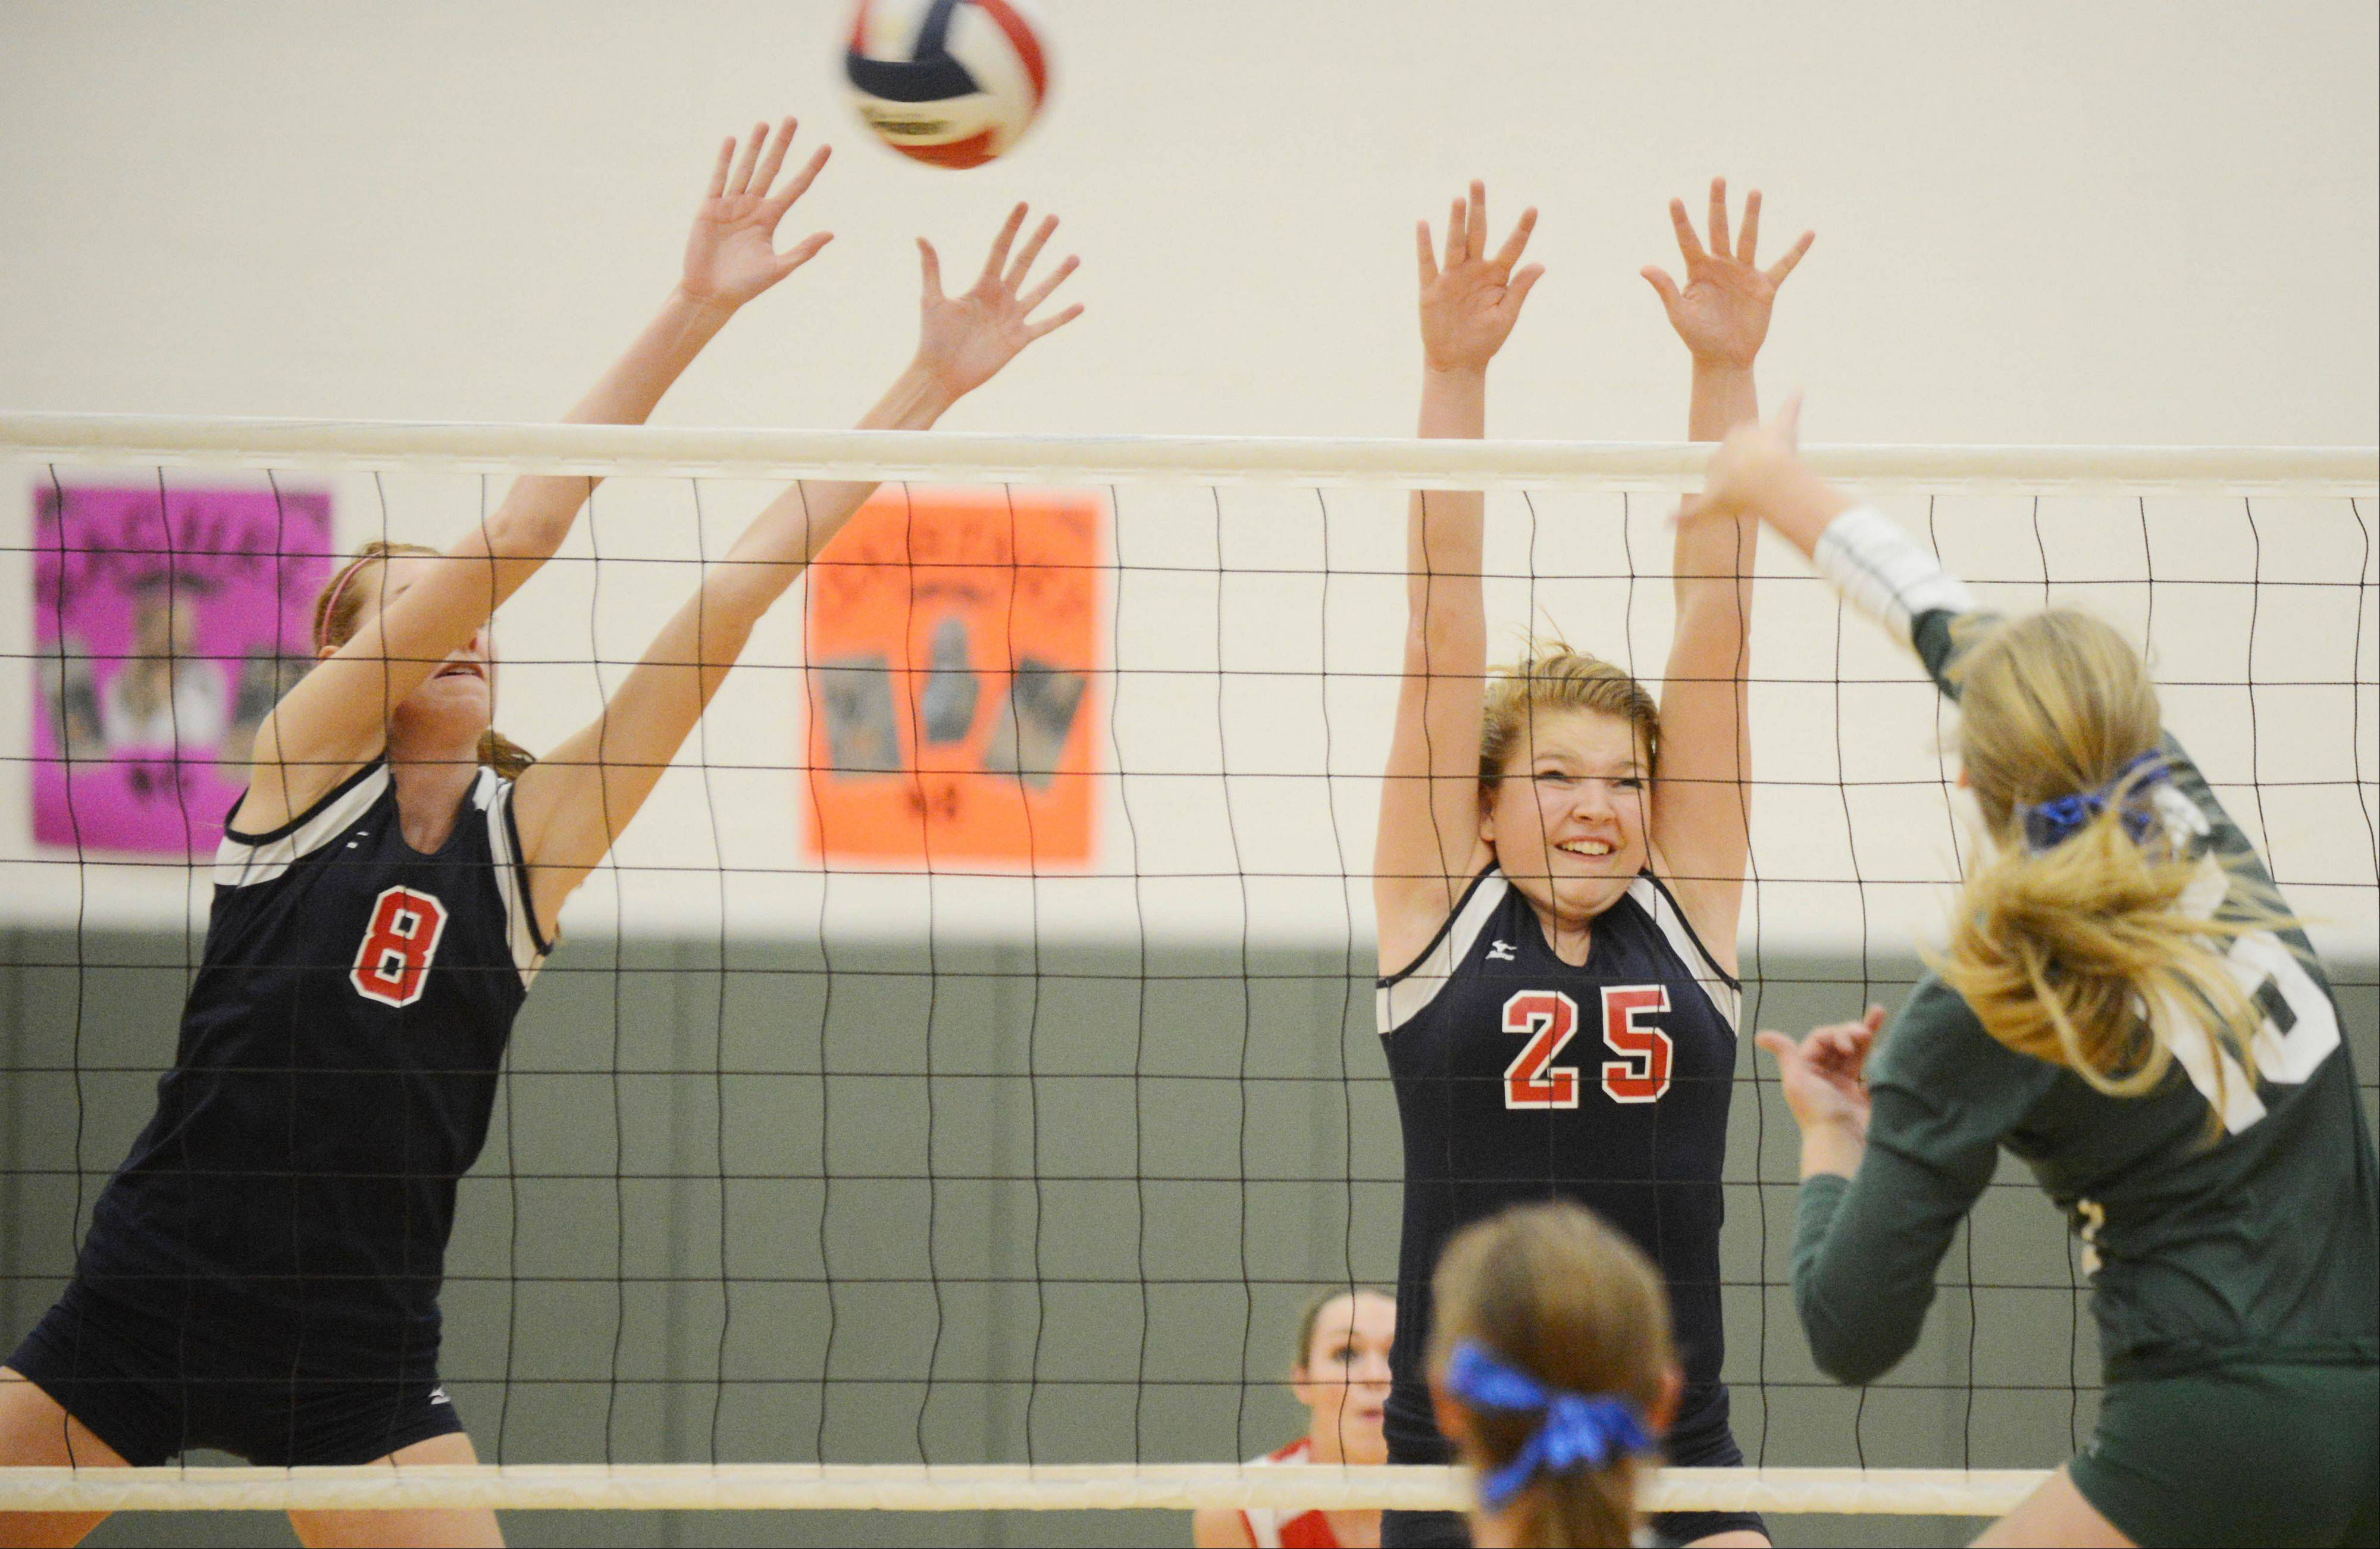 Sarah Halles,left, and Renee Rush both of South Elgin go up for the ball during the South Elgin at Waubonsie Valley girls volleyball game Wednesday.